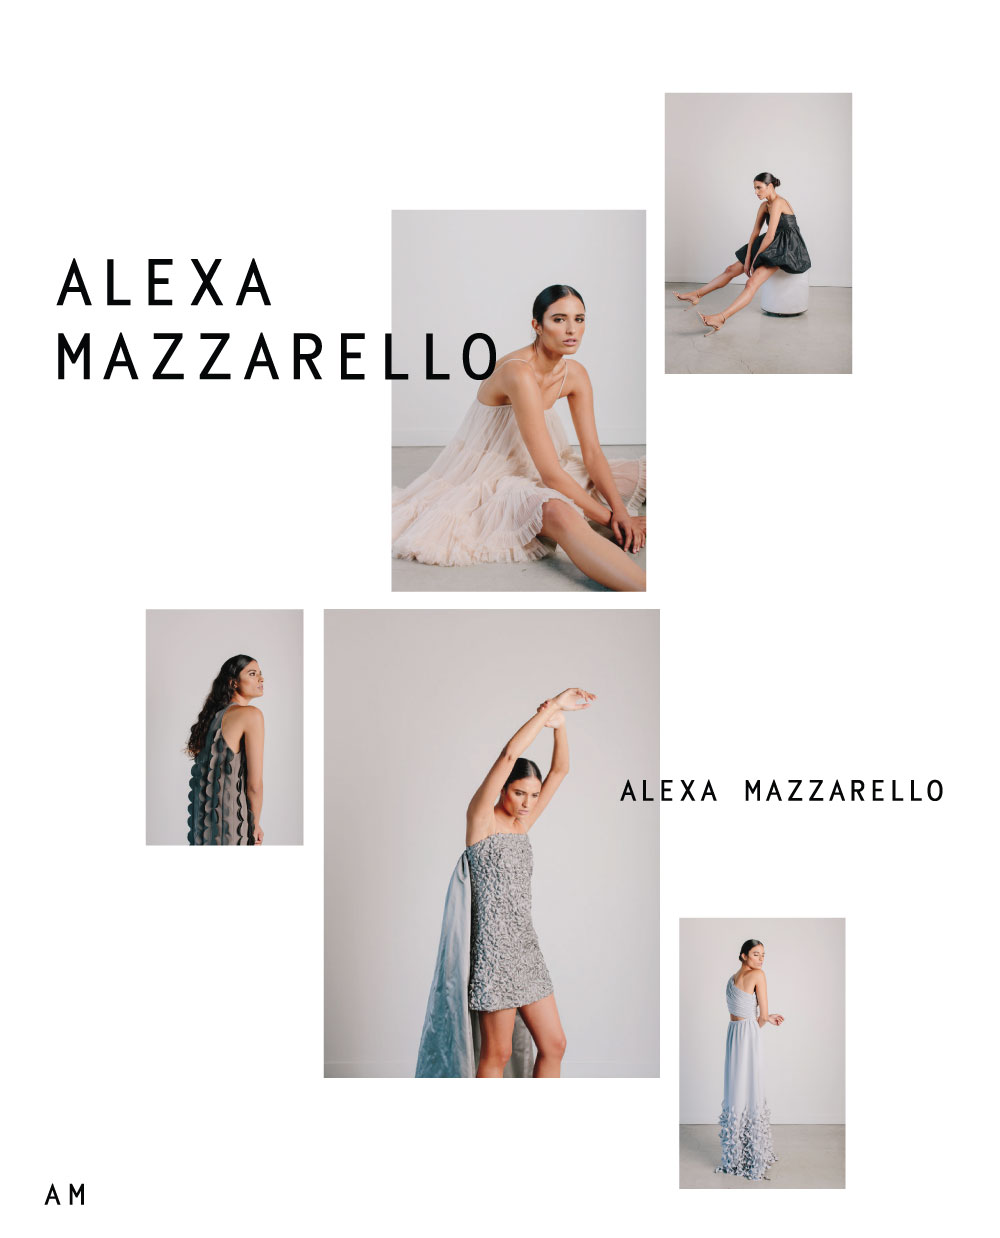 Alexa Mazzarello Vancouver Photographer Wordmark, Logo and Branding Design | www.alicia-carvalho.com